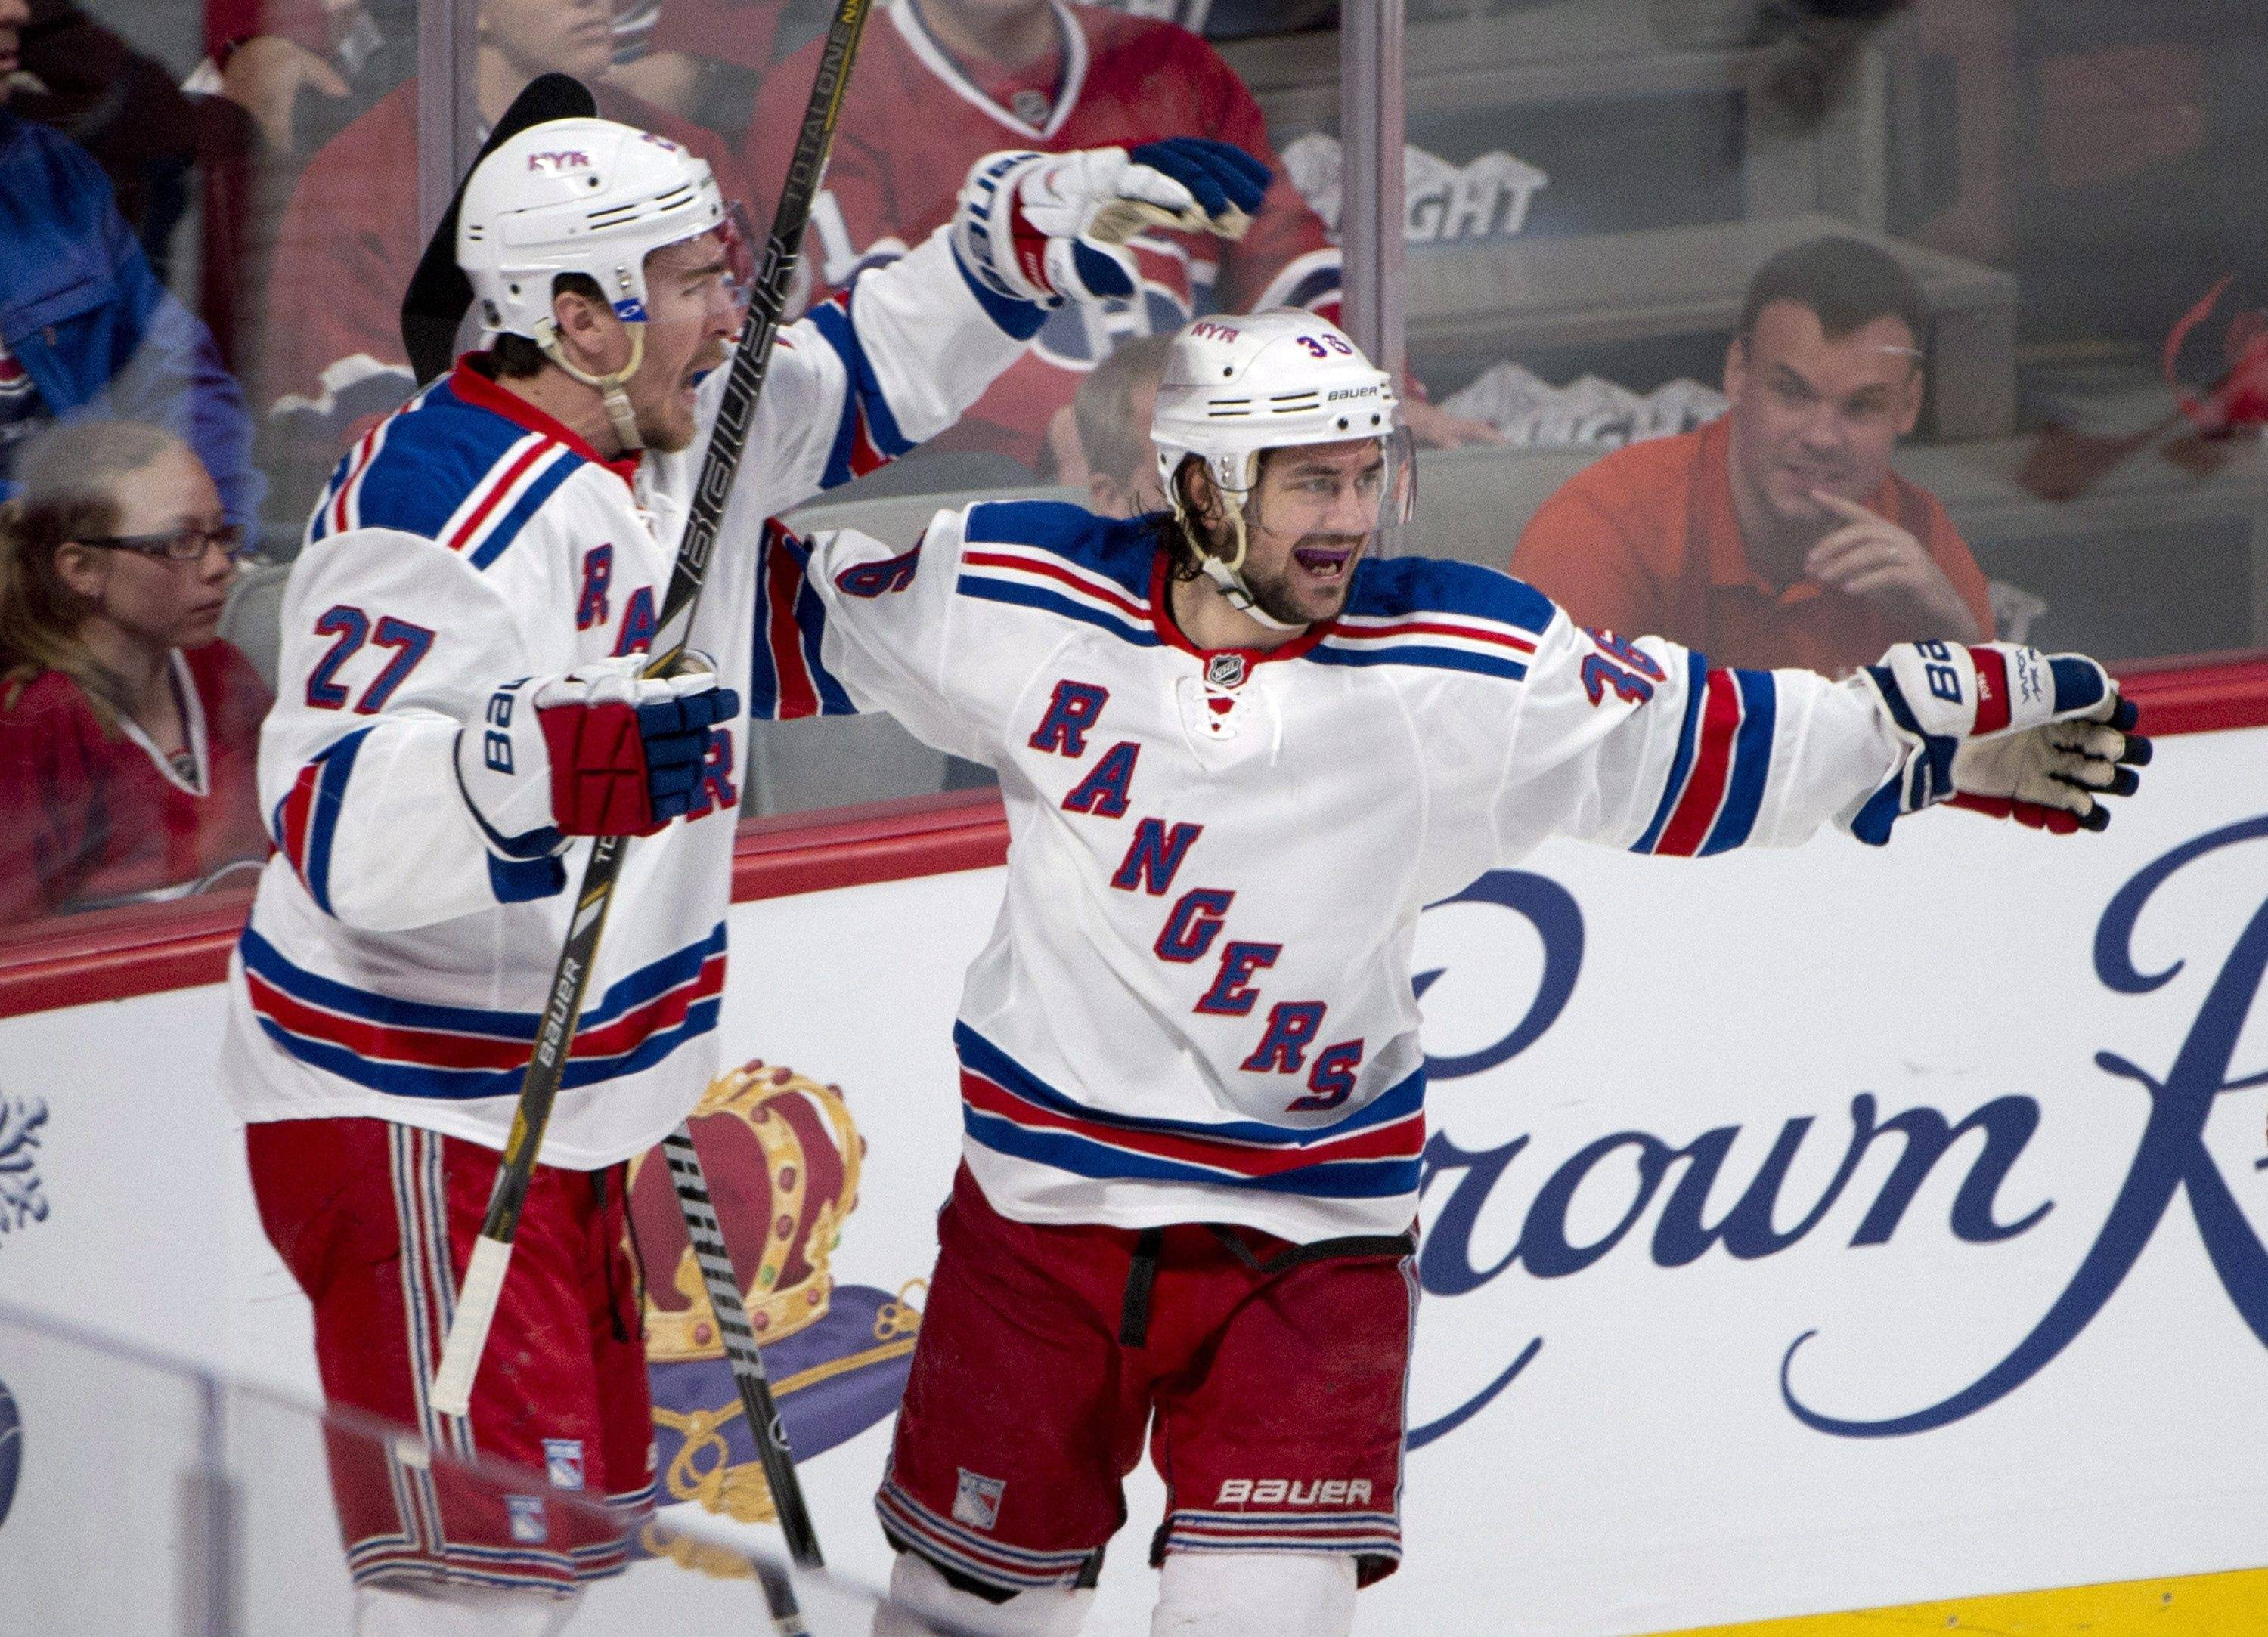 New York Rangers defenseman Ryan McDonagh, left, and left wing Mats Zuccarello celebrate after Zuccarello scored against the Montreal Canadiens during the first period in Game 1 of the Eastern Conference finals in the NHL hockey Stanley Cup playoffs in Montreal on Saturday, May 17, 2014. (AP Photo/The Canadian Press, Adrian Wyld